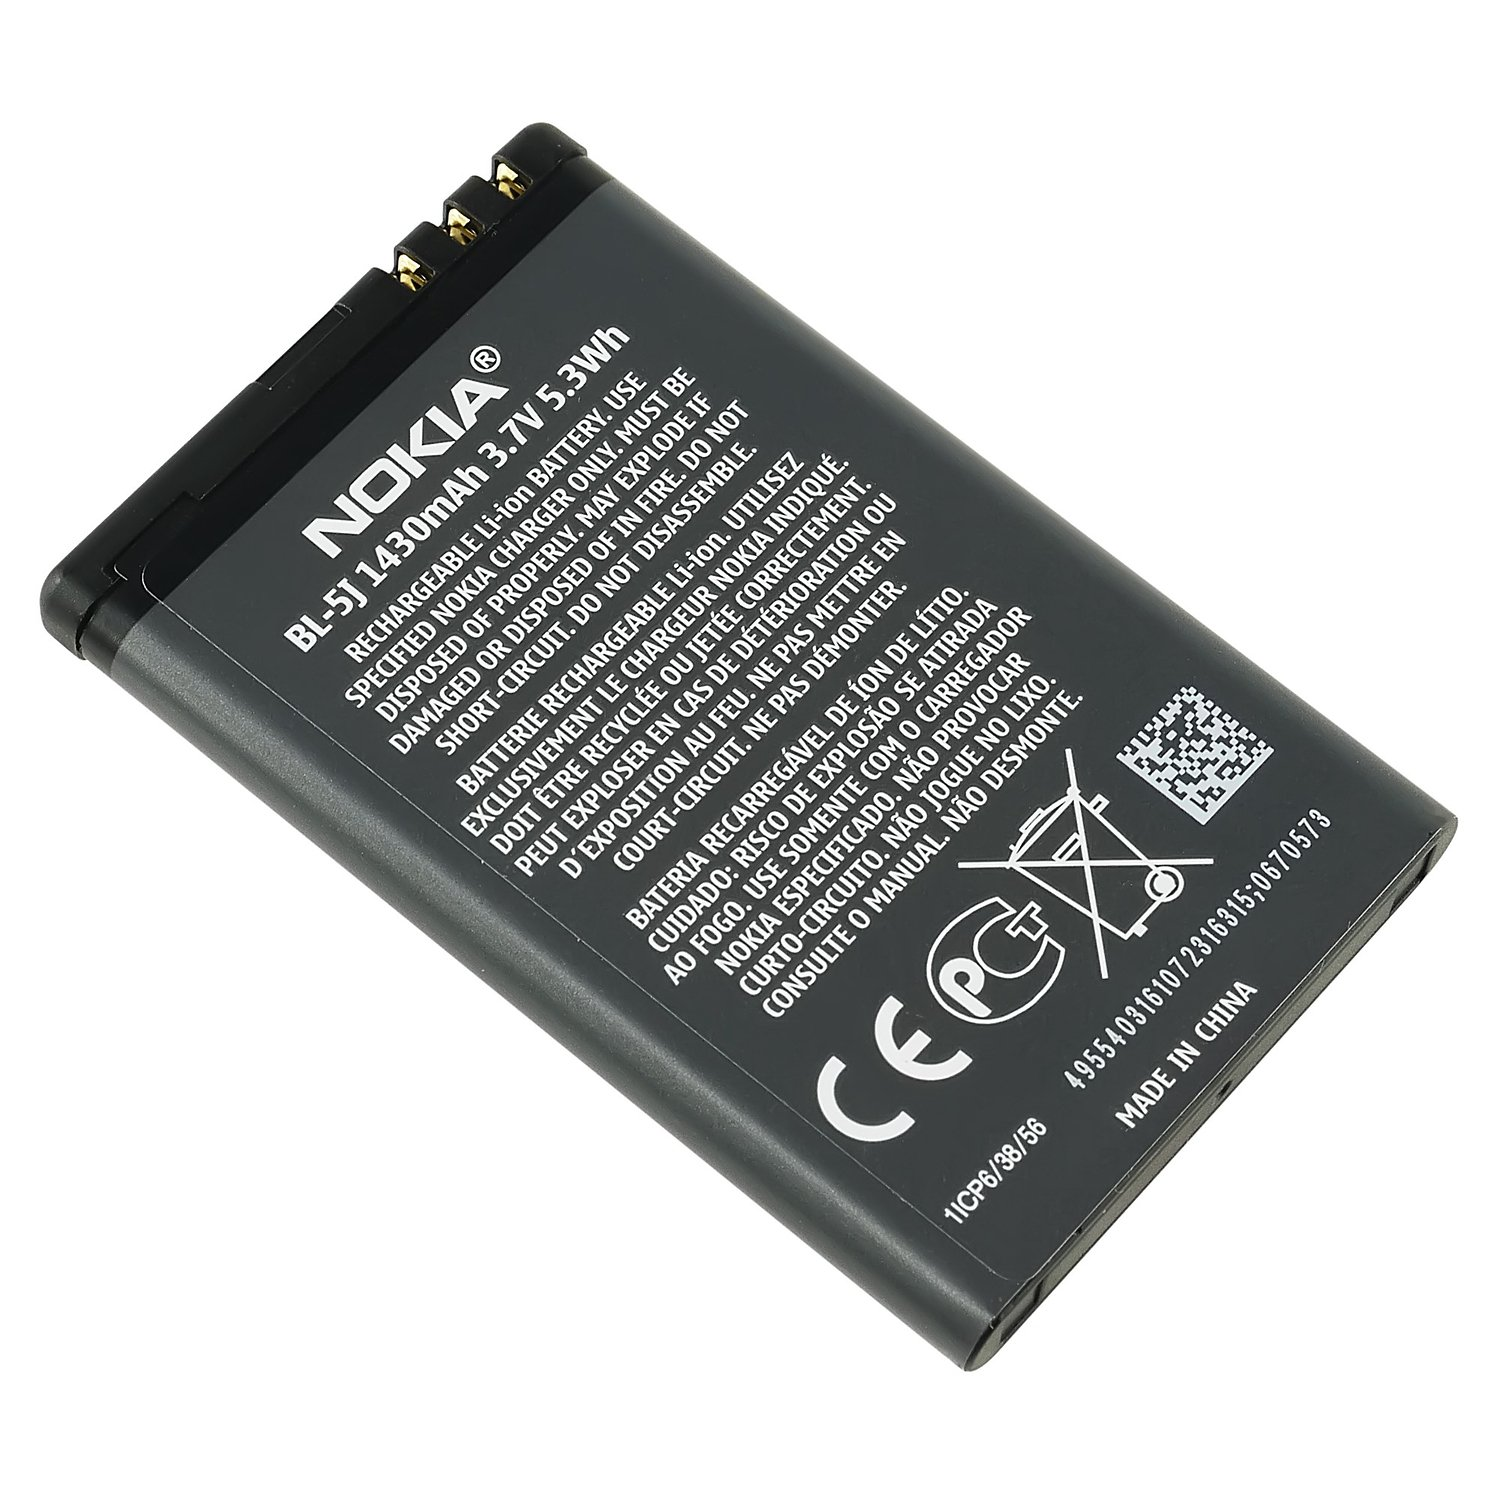 Amazon.com: Nokia 5800 XpressMusic/ N900/ X6/ 5230 Standard Battery OEM  BL-5J: Cell Phones & Accessories